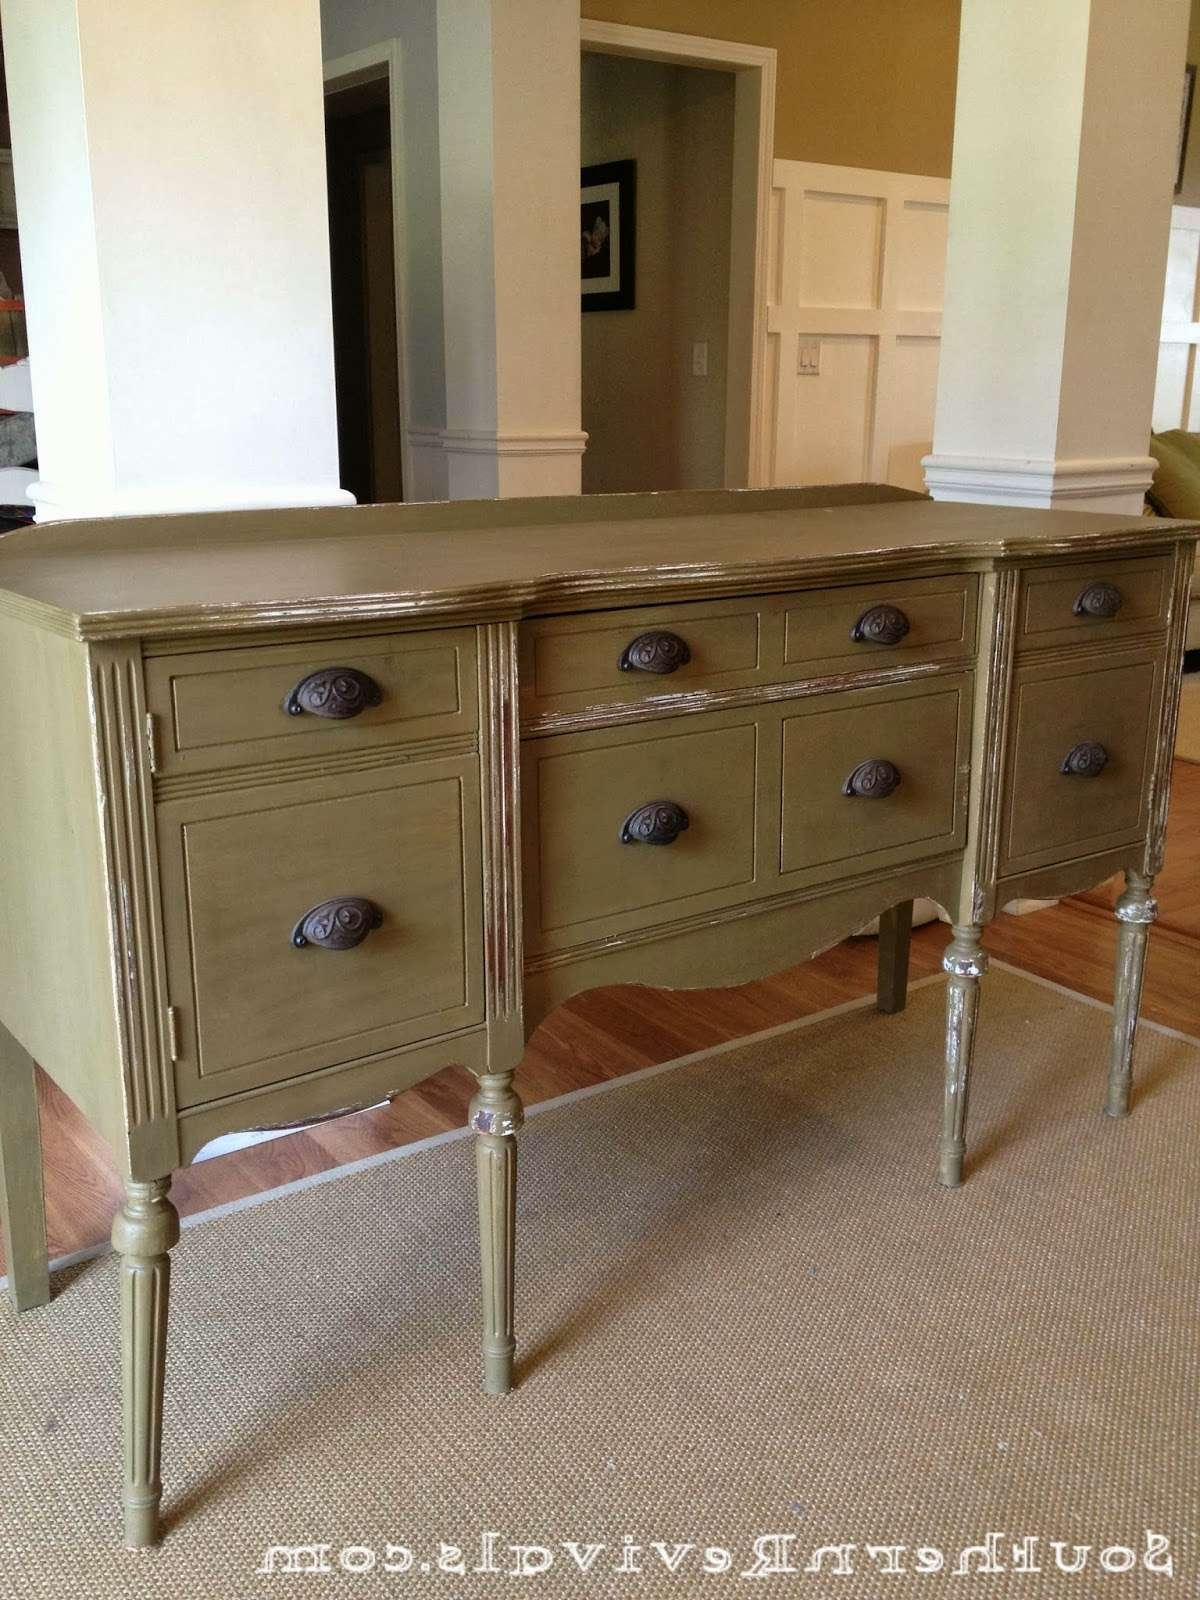 Fresh Vintage Sideboards And Buffets – Bjdgjy For Antique Sideboards And Buffets (View 12 of 20)